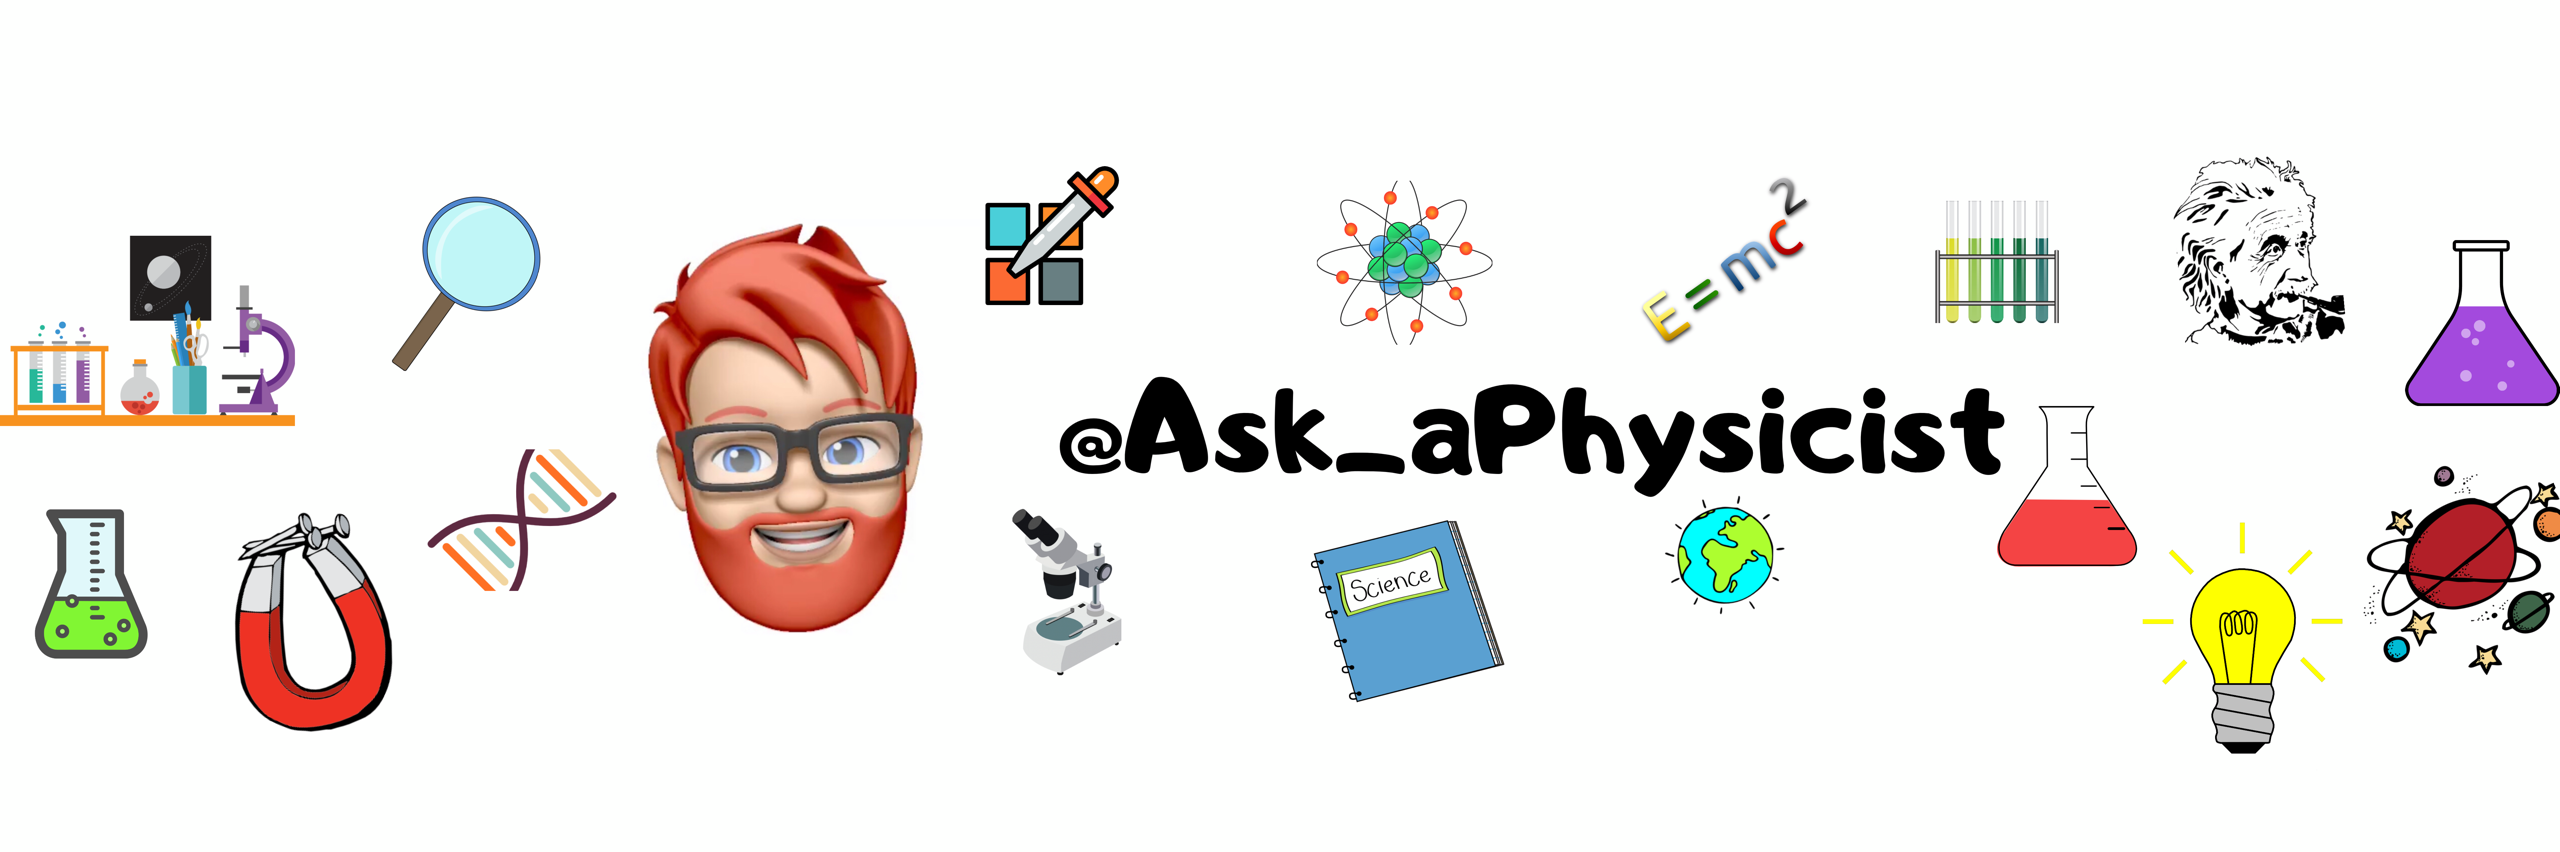 Ask_aPhysicist